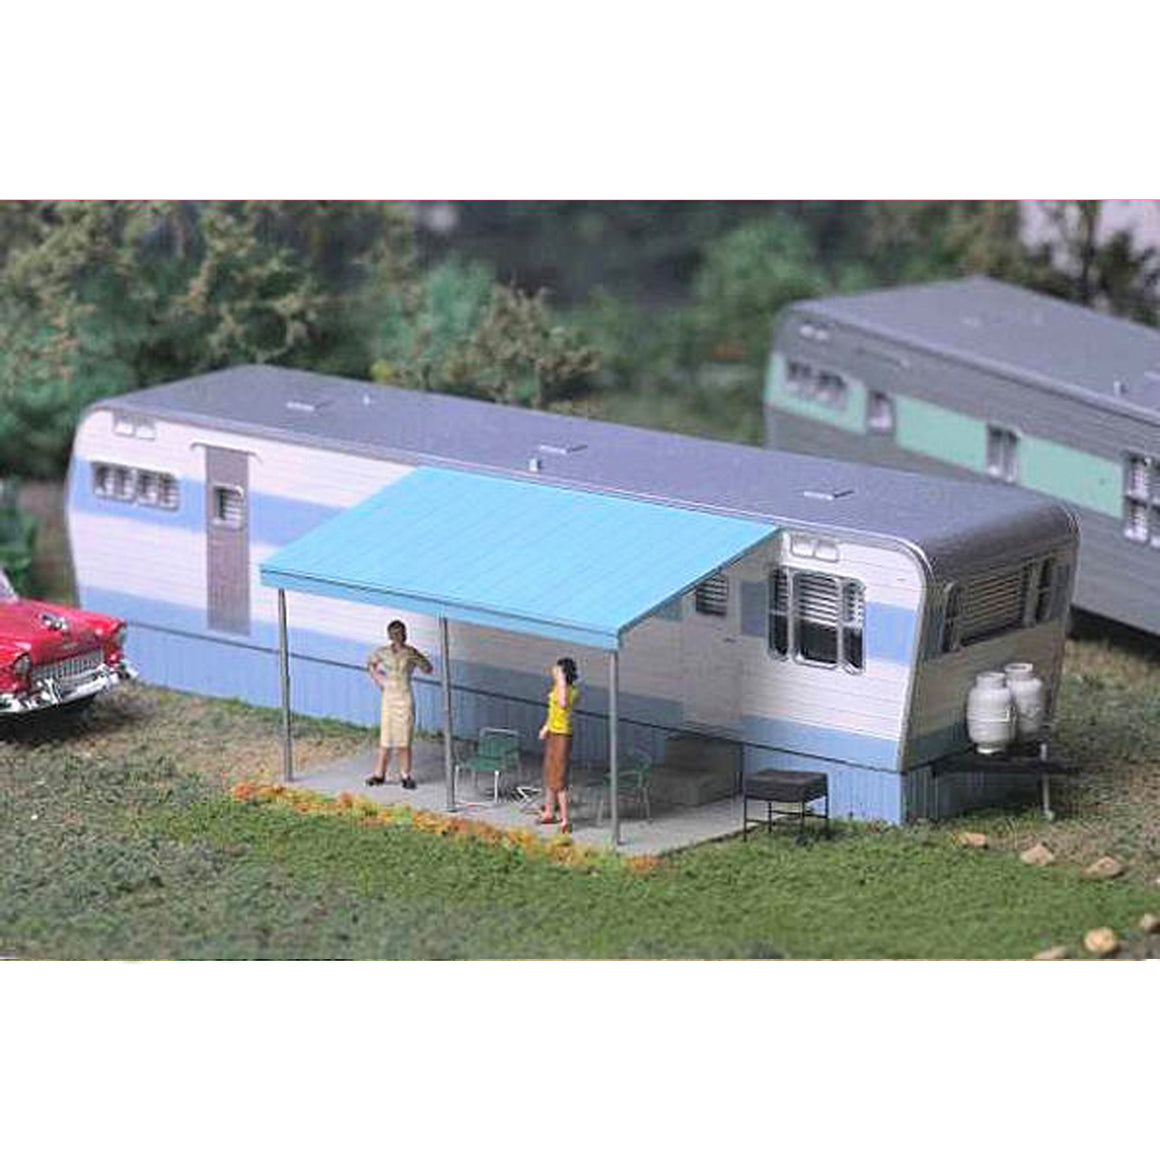 HO Scale: Roberts Road Mobile Home - Kit